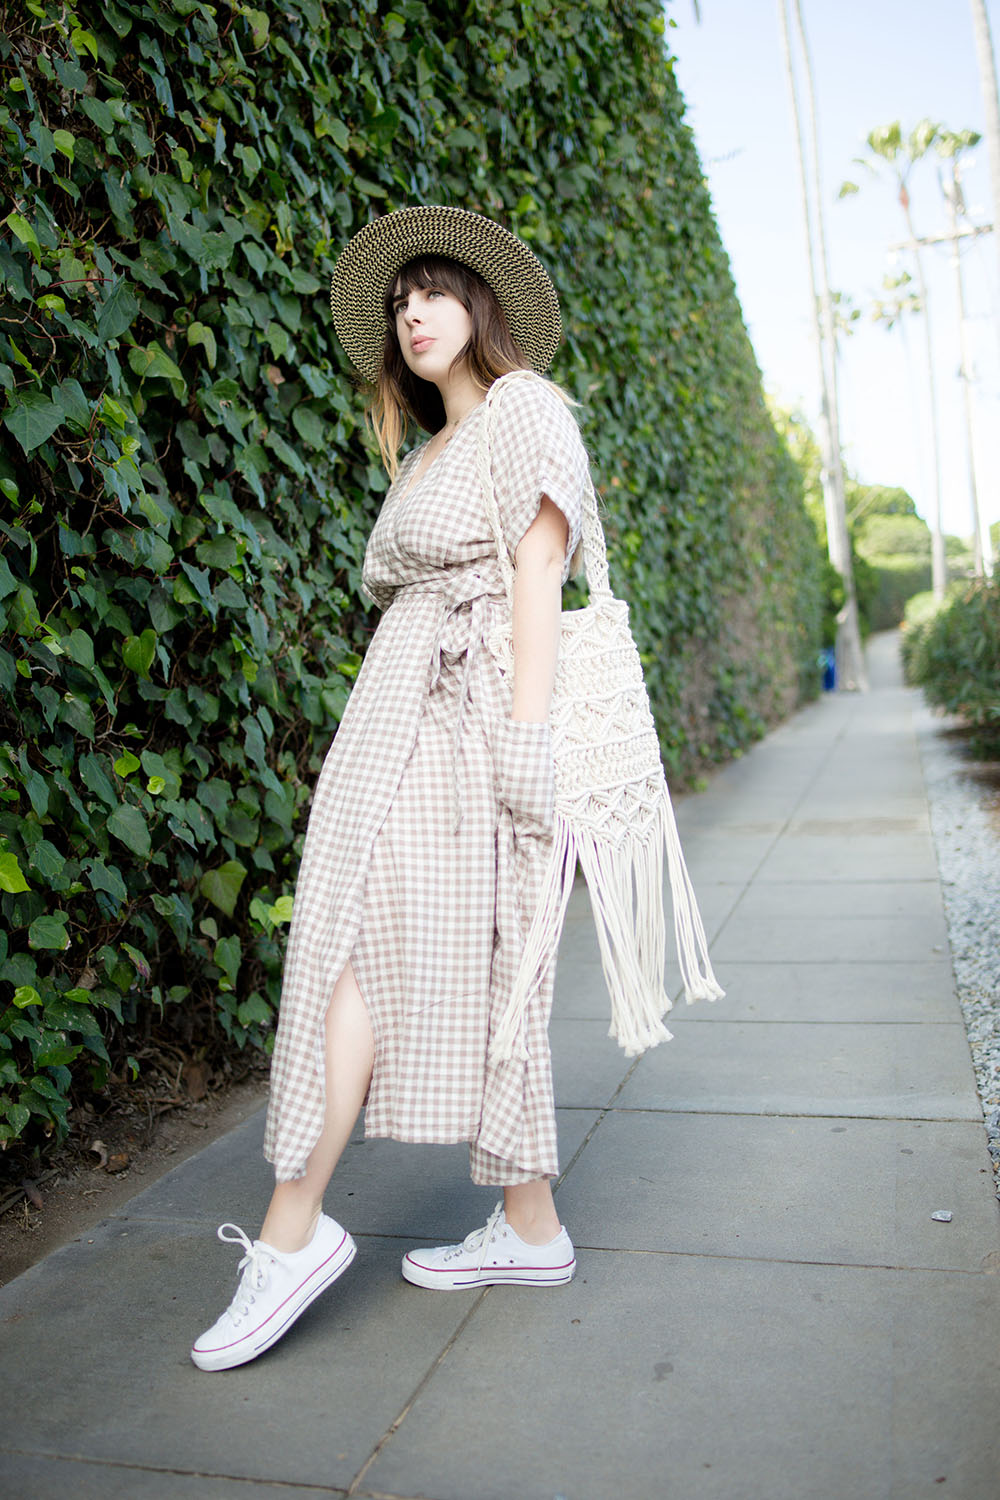 Streetstyle+of+Girl+Wearing+UO+Gabrielle+Linen+Midi+Wrap+Dress+and+white+converse+chuck+Taylors